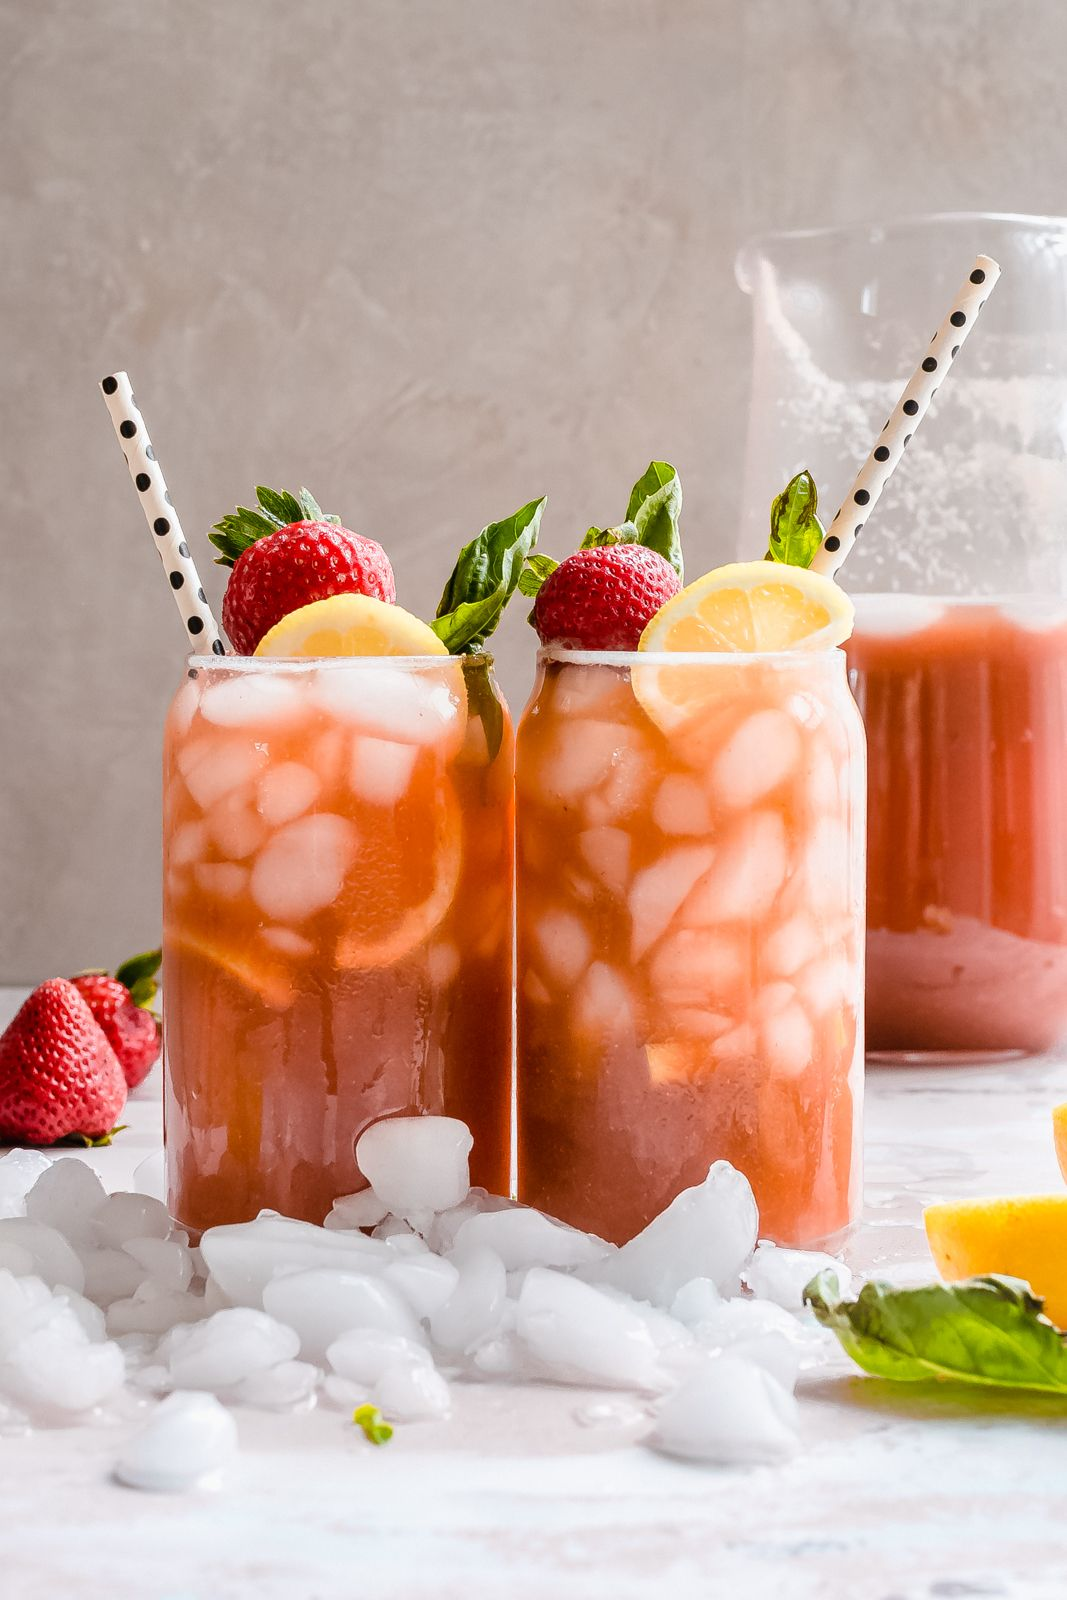 Refreshing Strawberry Basil Lemonade #basillemonade